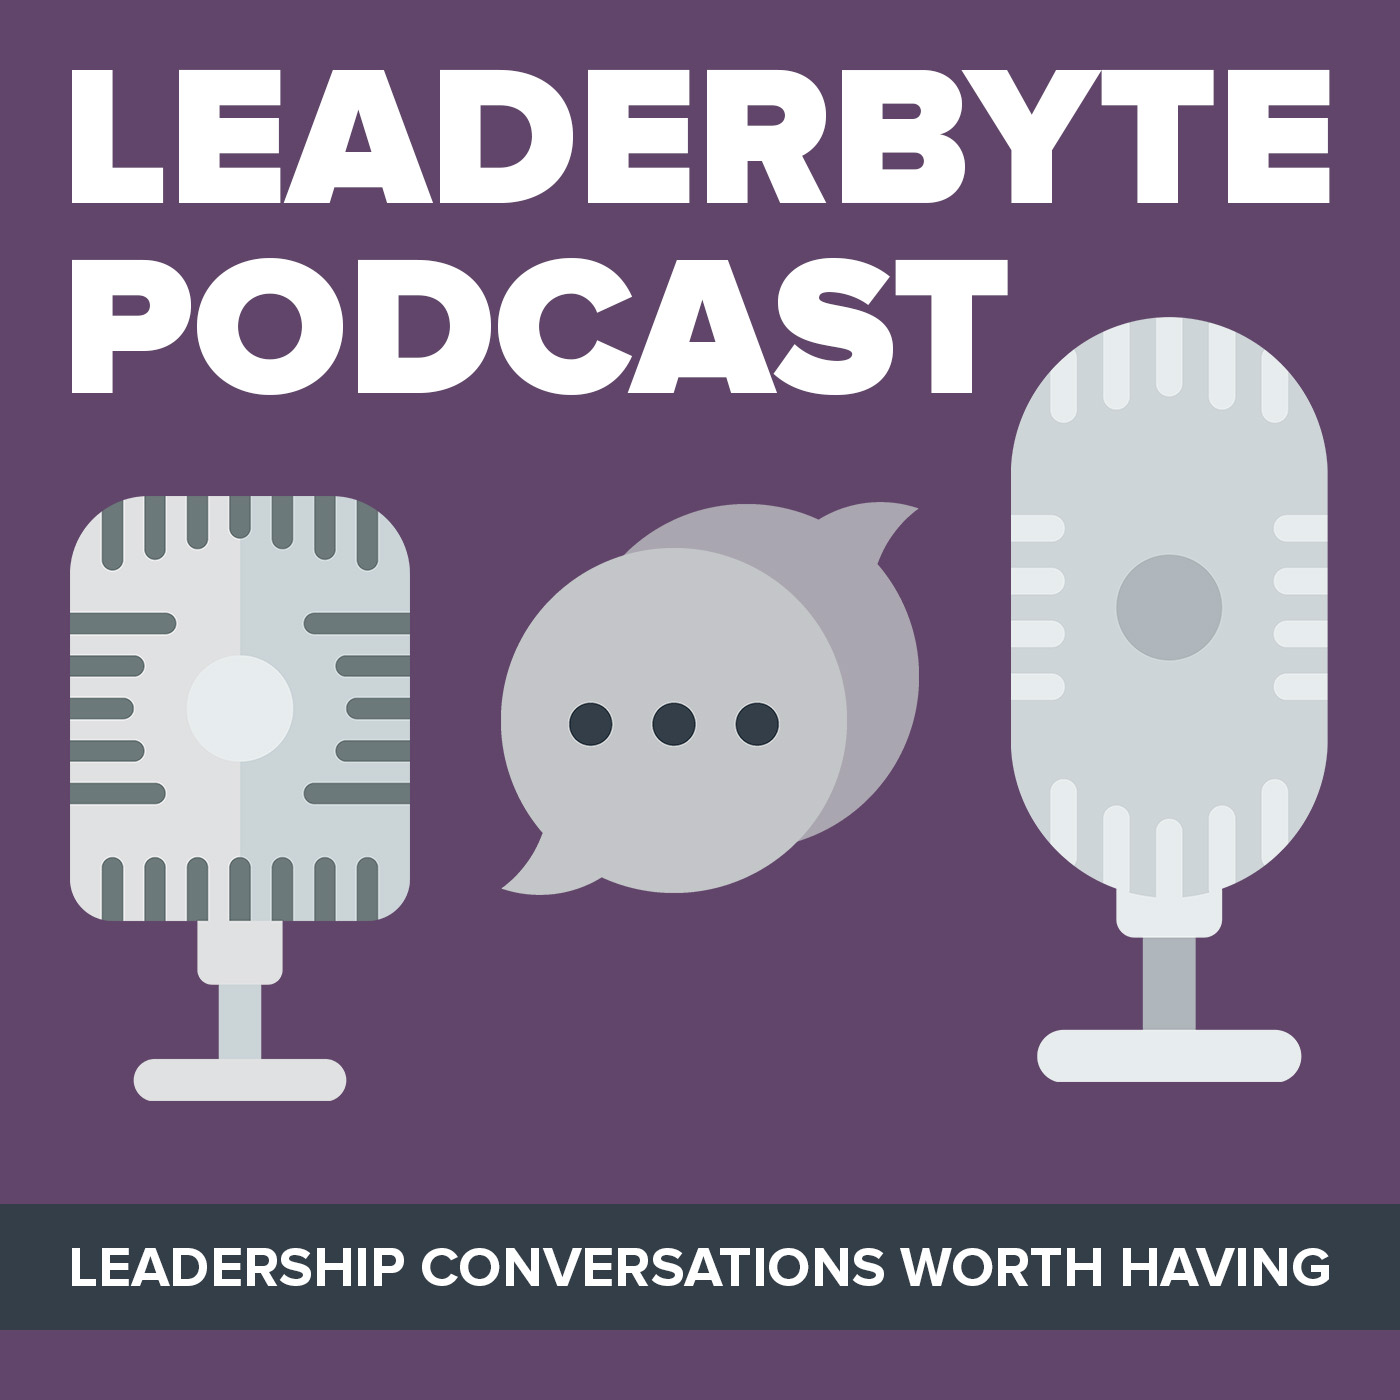 Leaderbyte Podcast